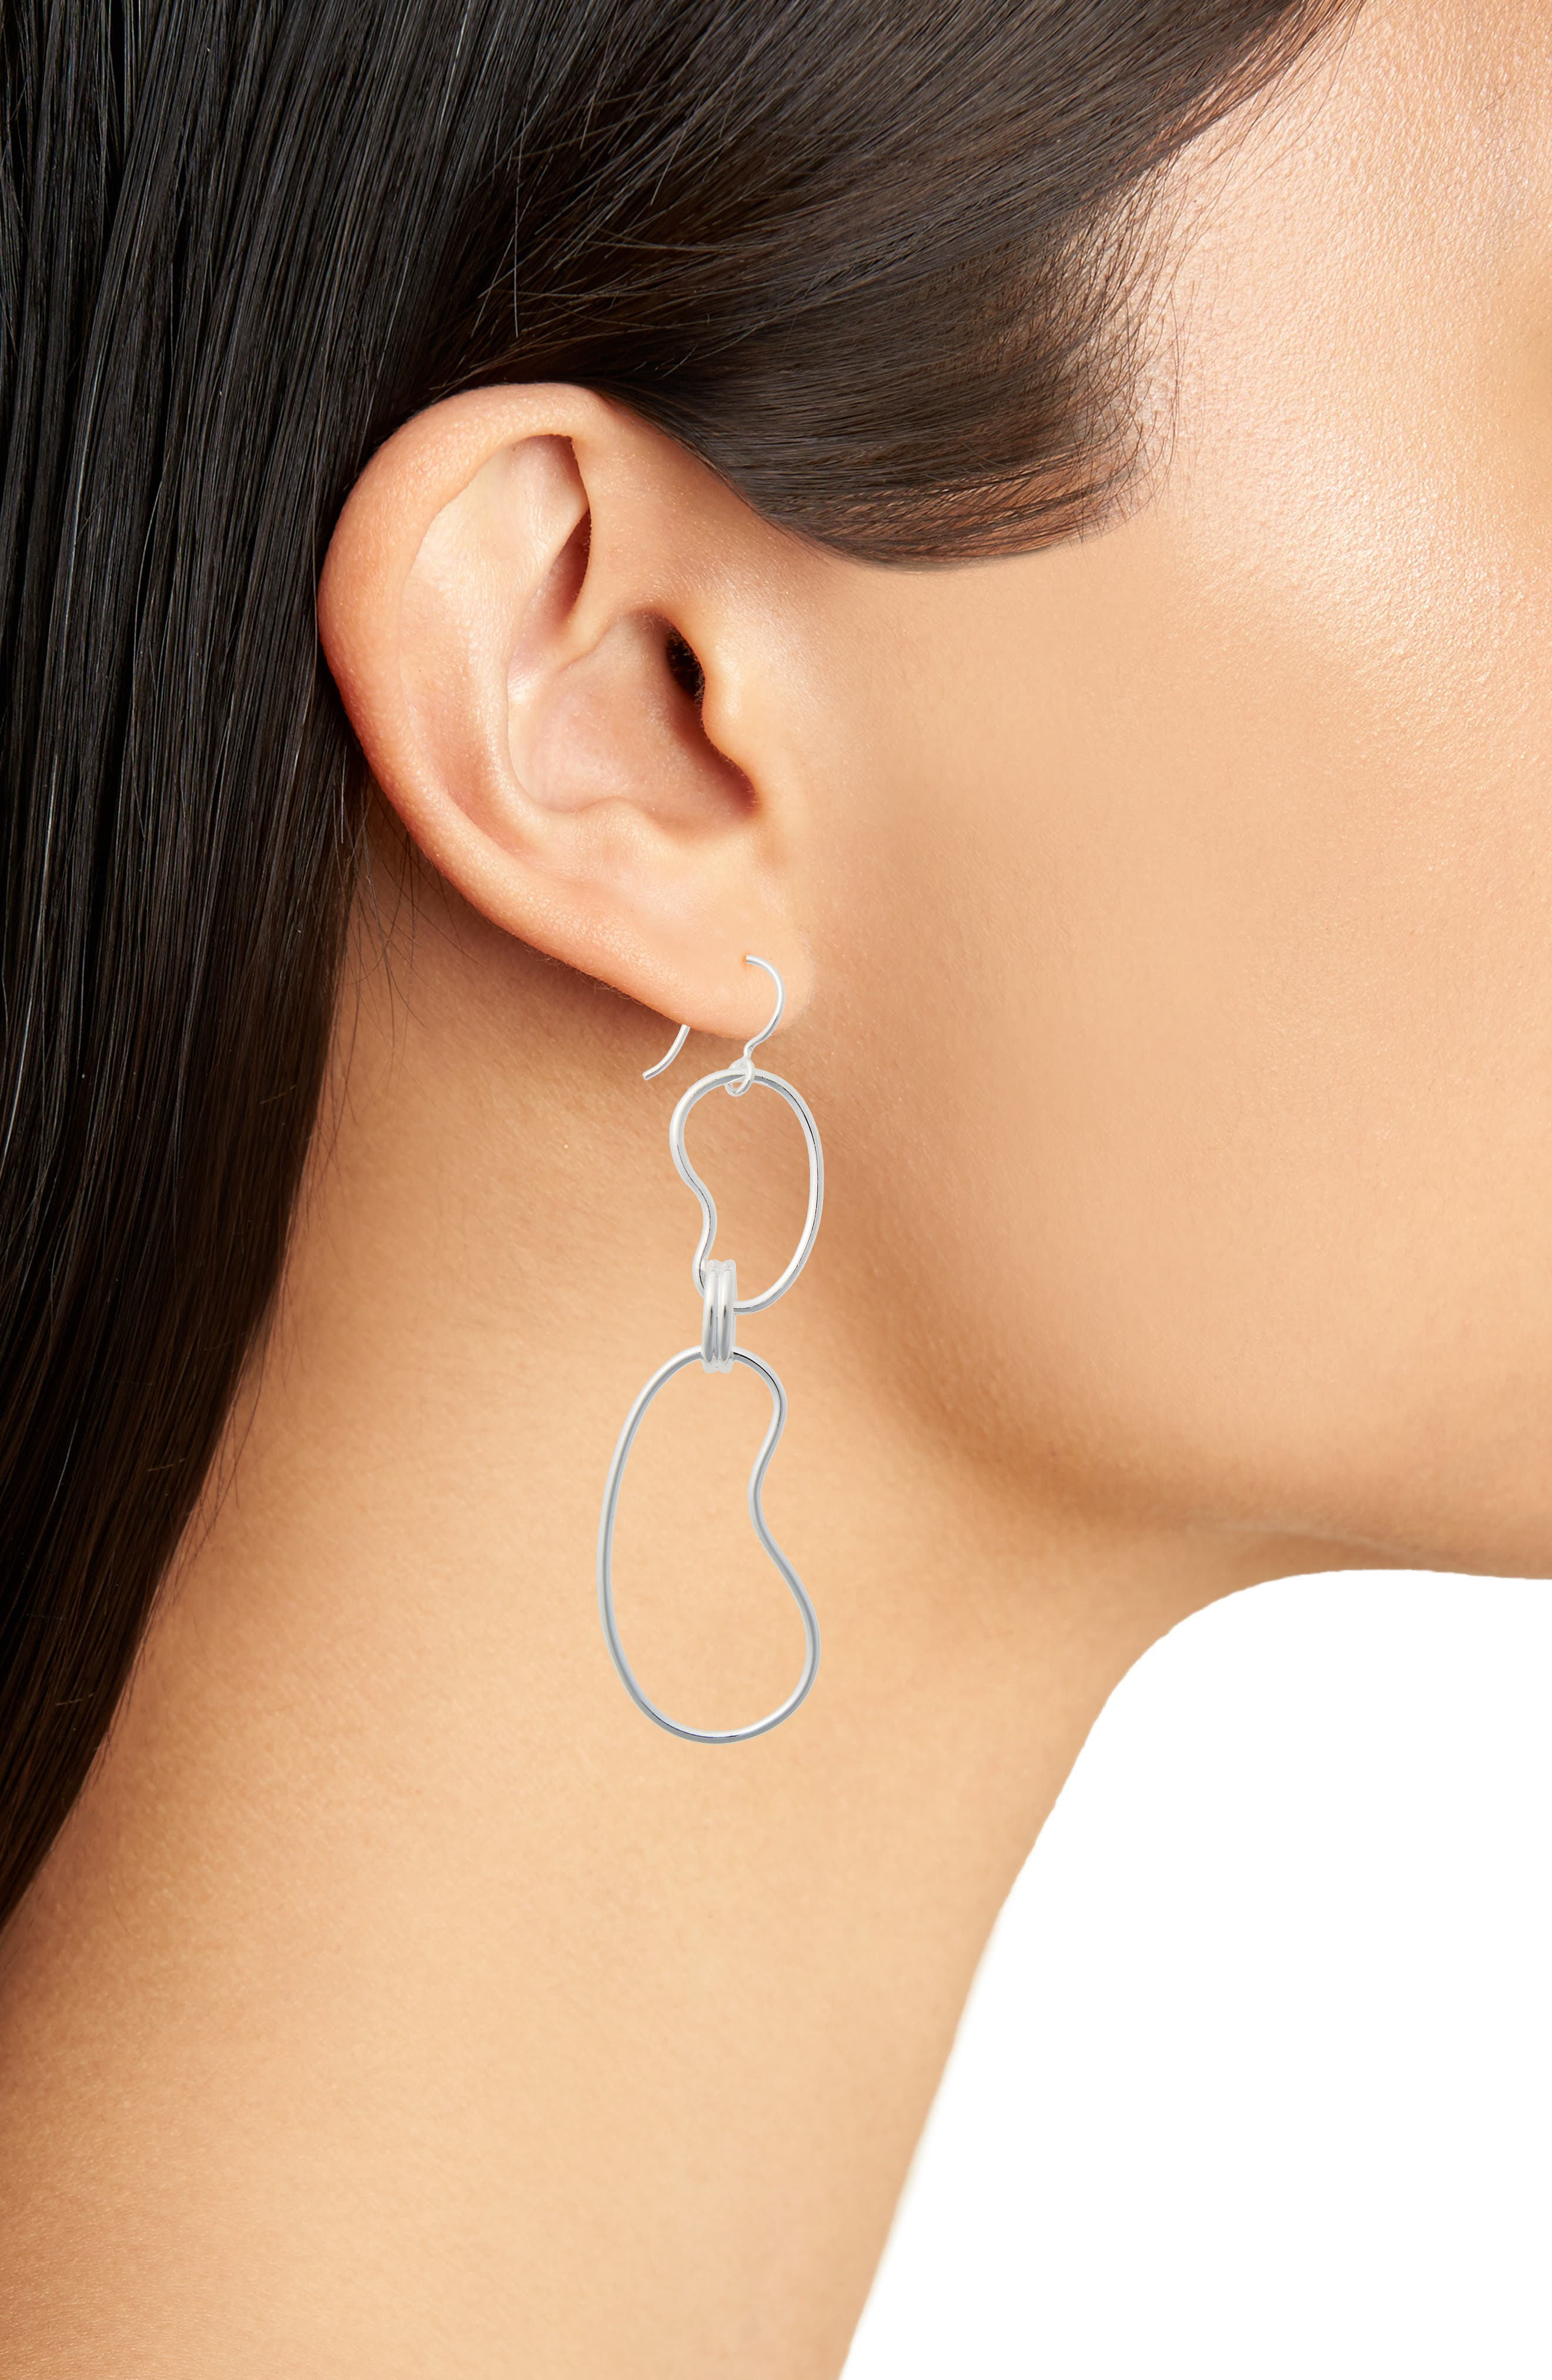 Classico Kidney Oval Link Earrings,                             Alternate thumbnail 2, color,                             040